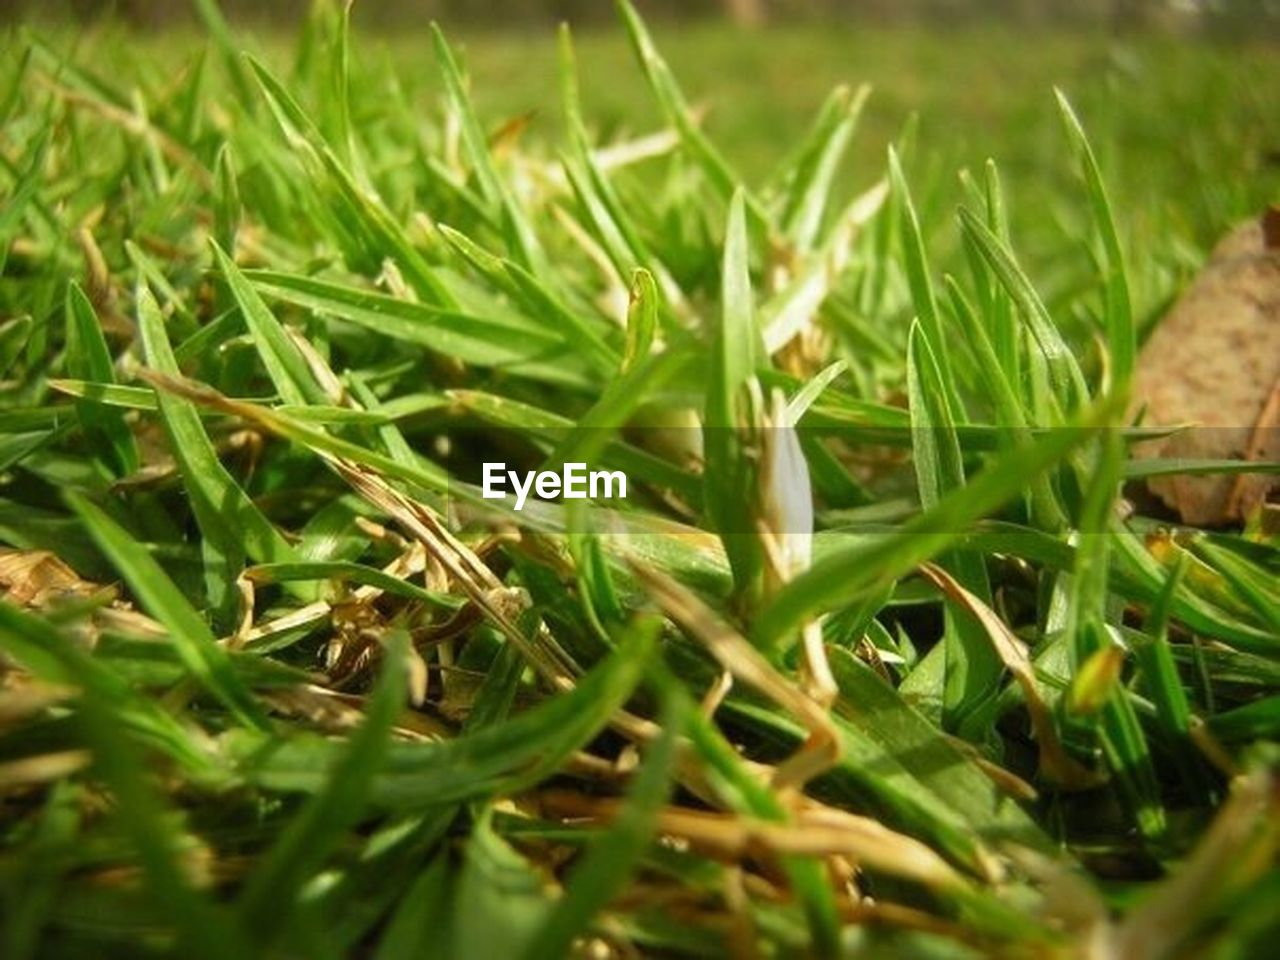 green color, grass, nature, field, growth, plant, selective focus, no people, outdoors, day, close-up, beauty in nature, freshness